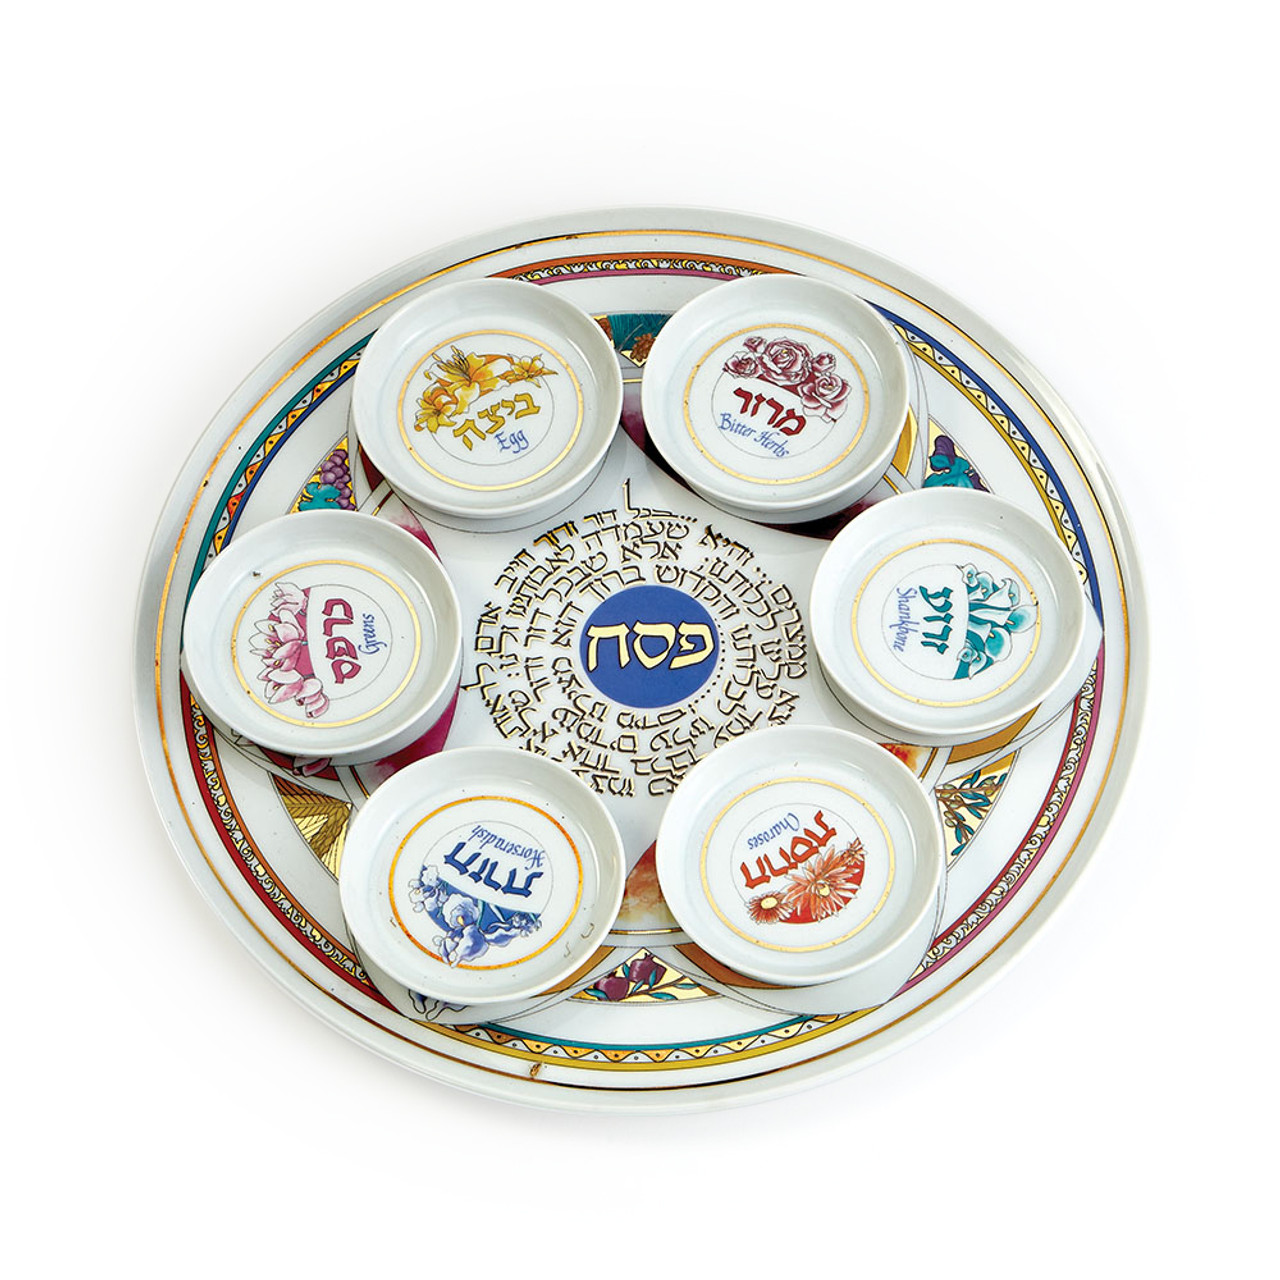 Plates Handmade Products Diy Ceramic Seder Plate